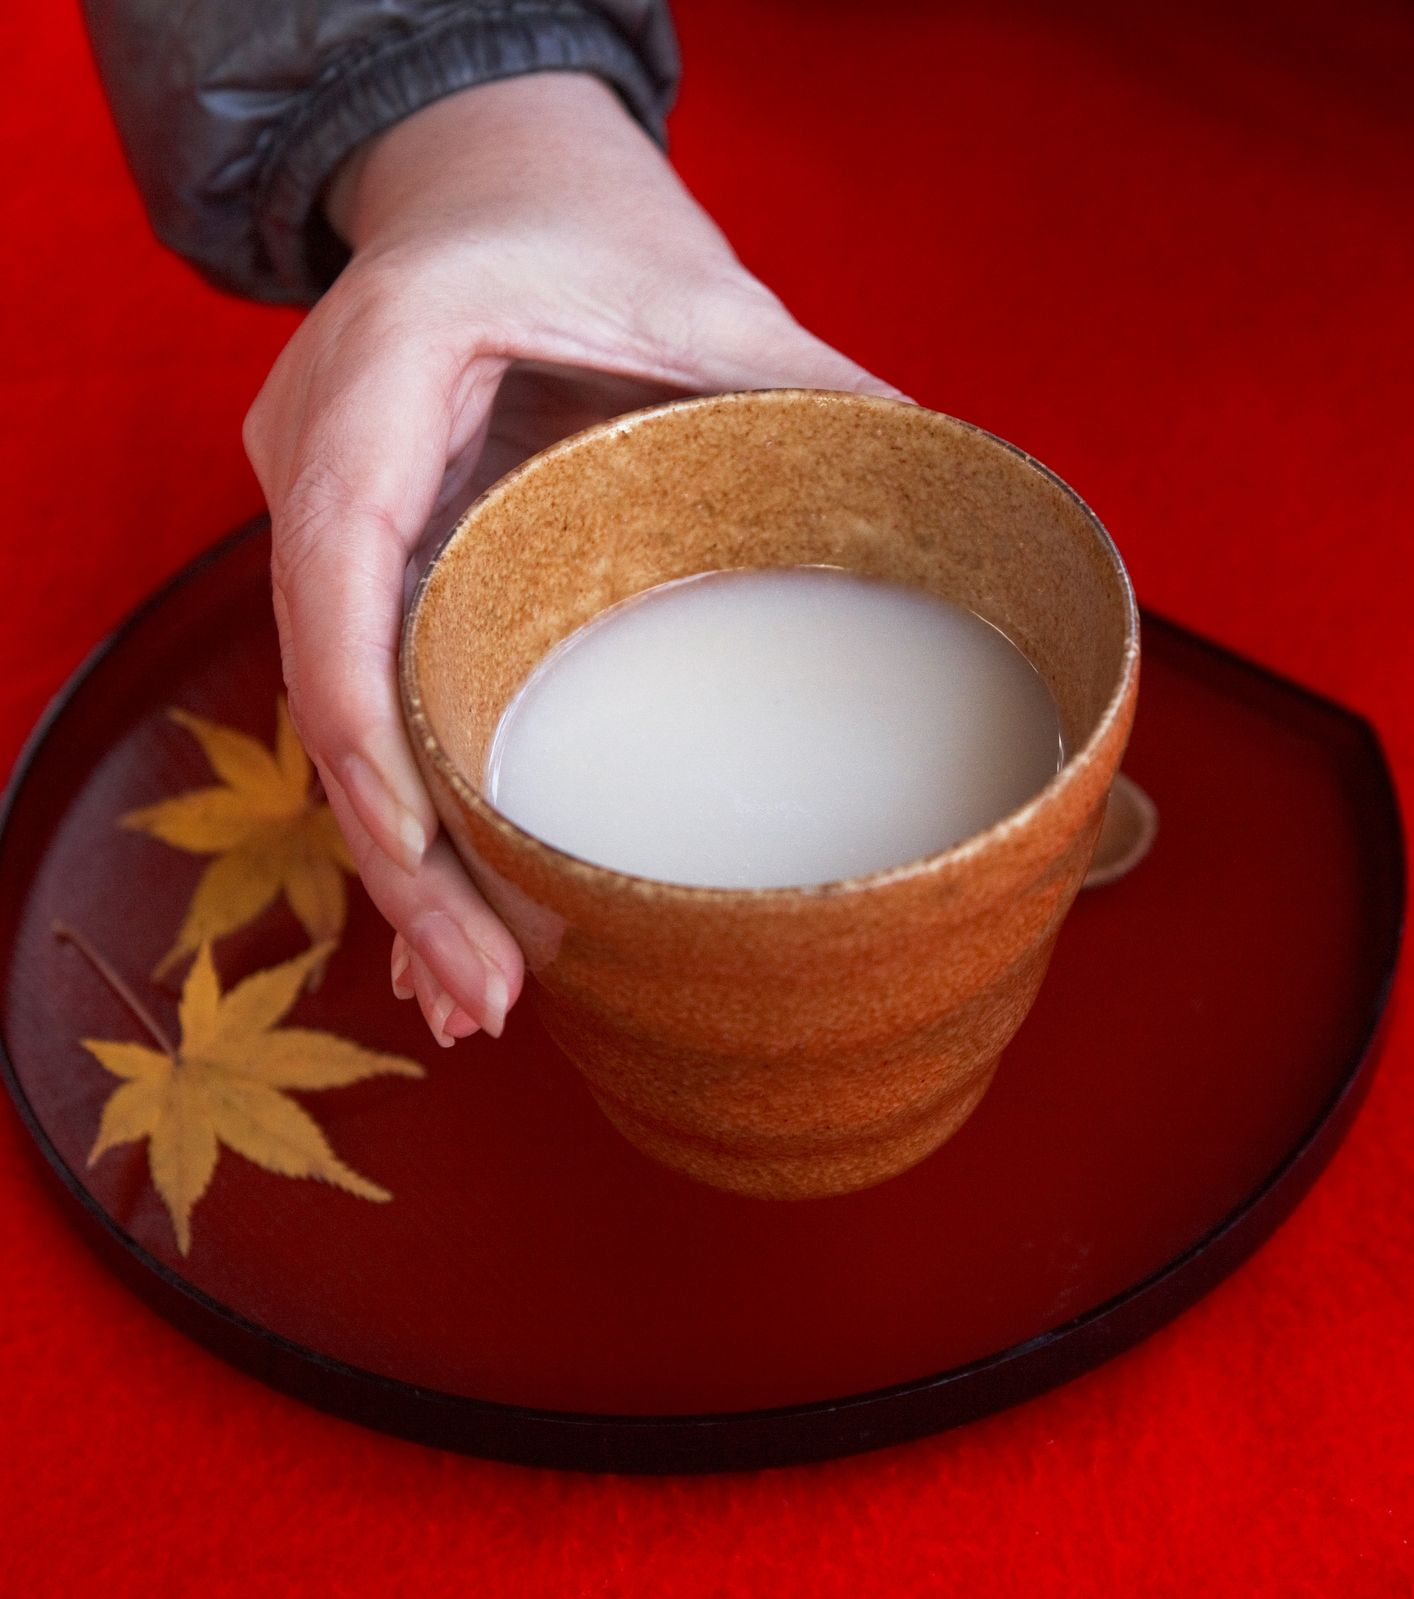 A cup of Amazake